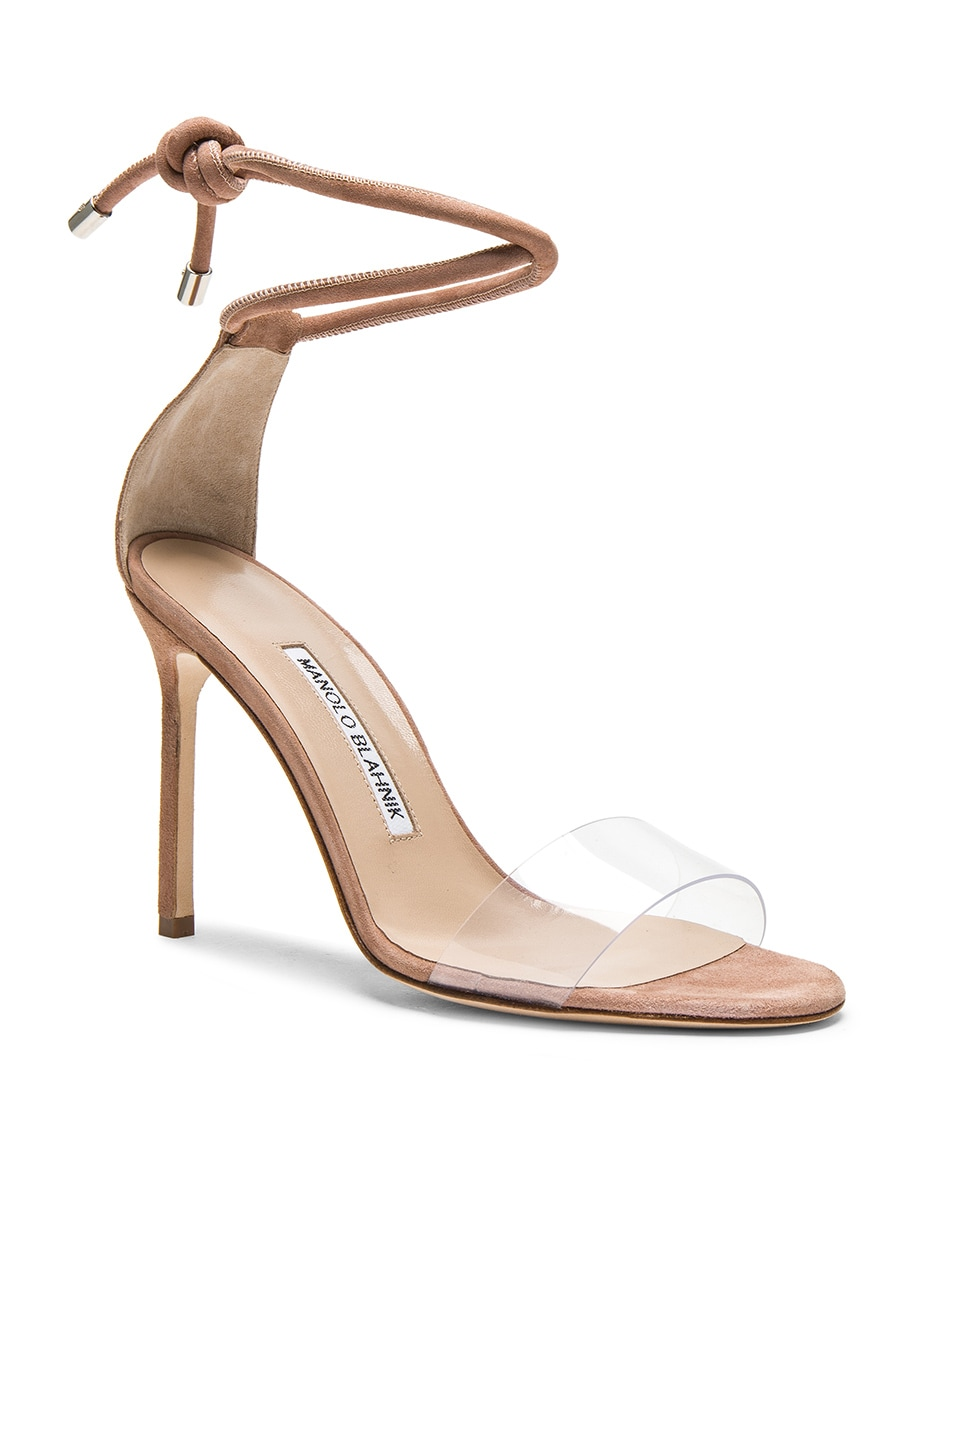 Image 2 of Manolo Blahnik 105 Suede Estro Sandals in Rose Nude Suede